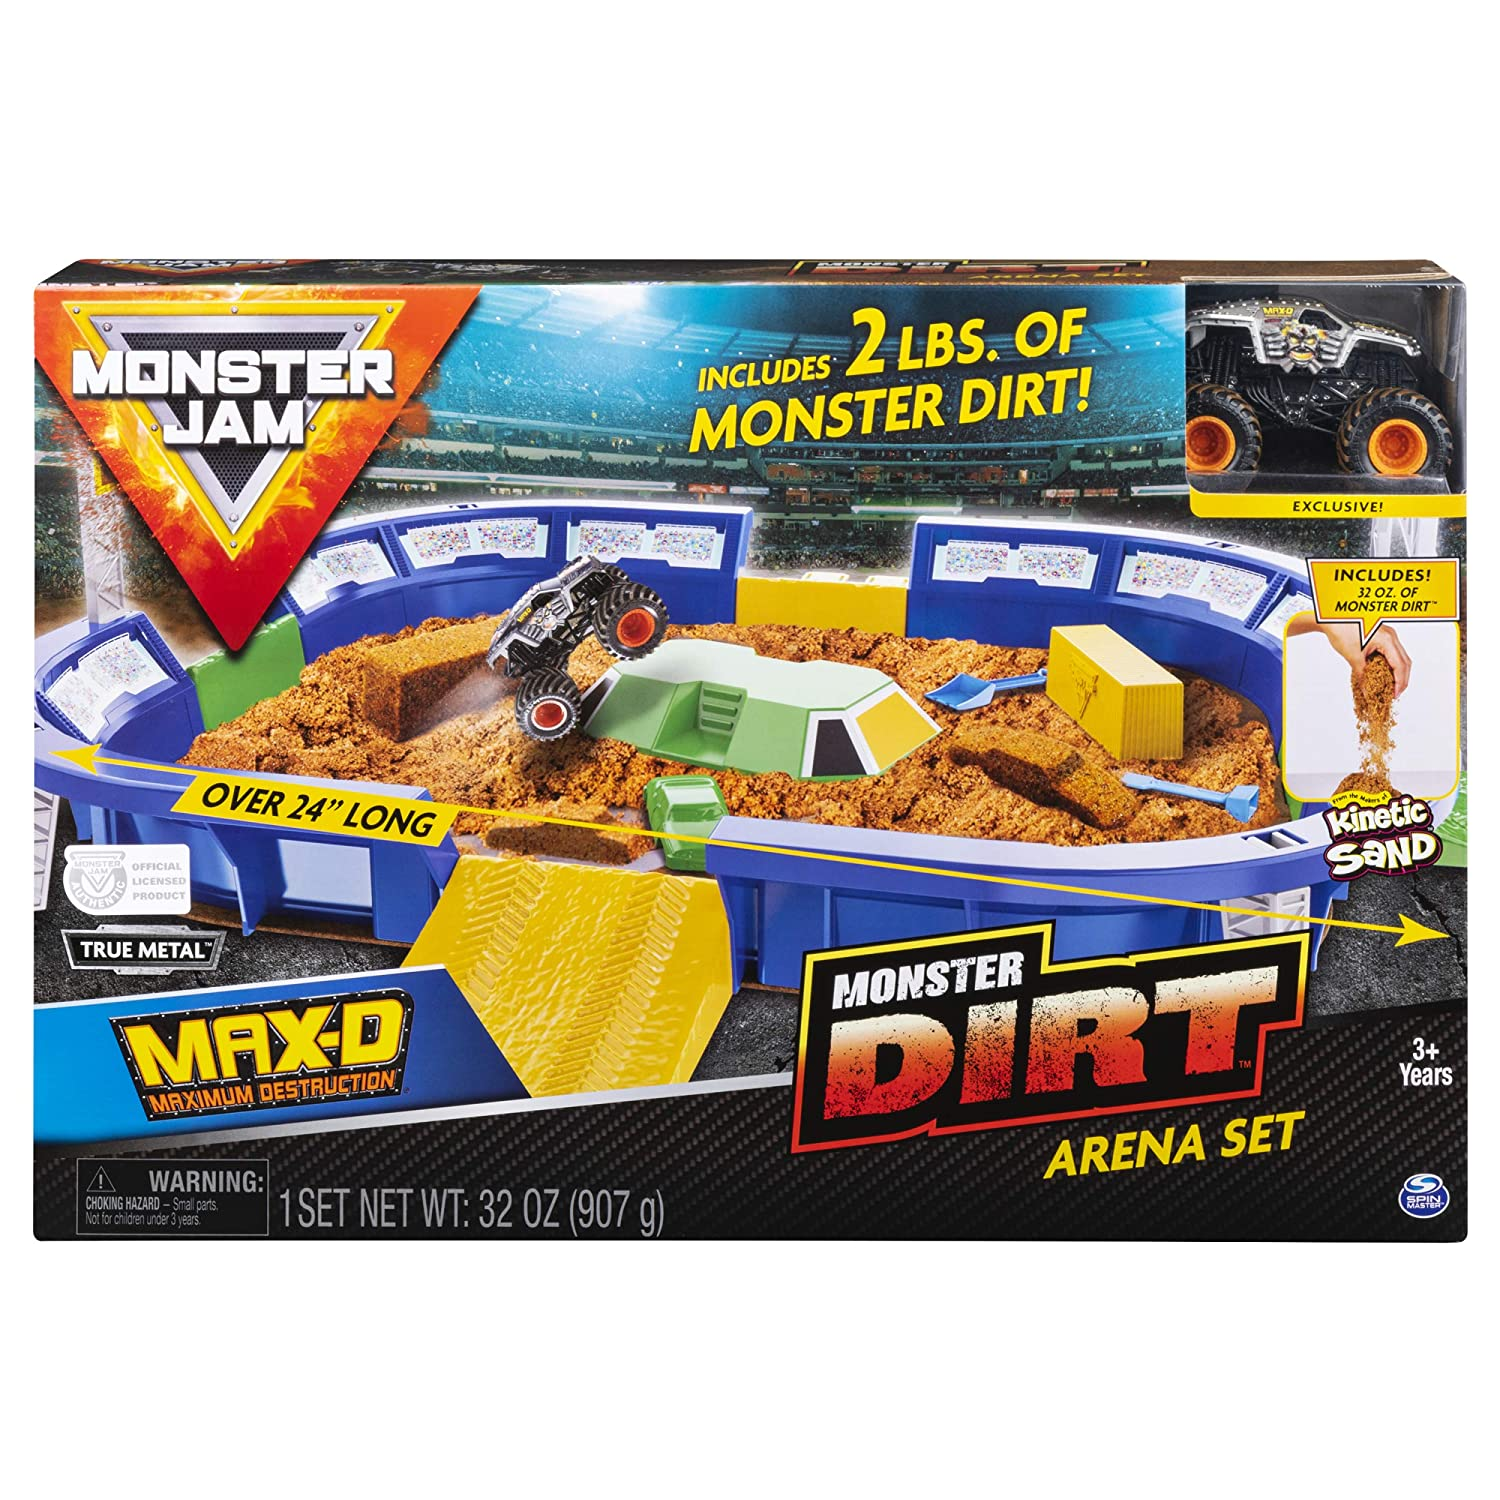 "Monster Jam, Monster Dirt Arena 24"" Playset with 2lbs of Monster Dirt & Exclusive 1: 64 Scale Die-Cast Truck"